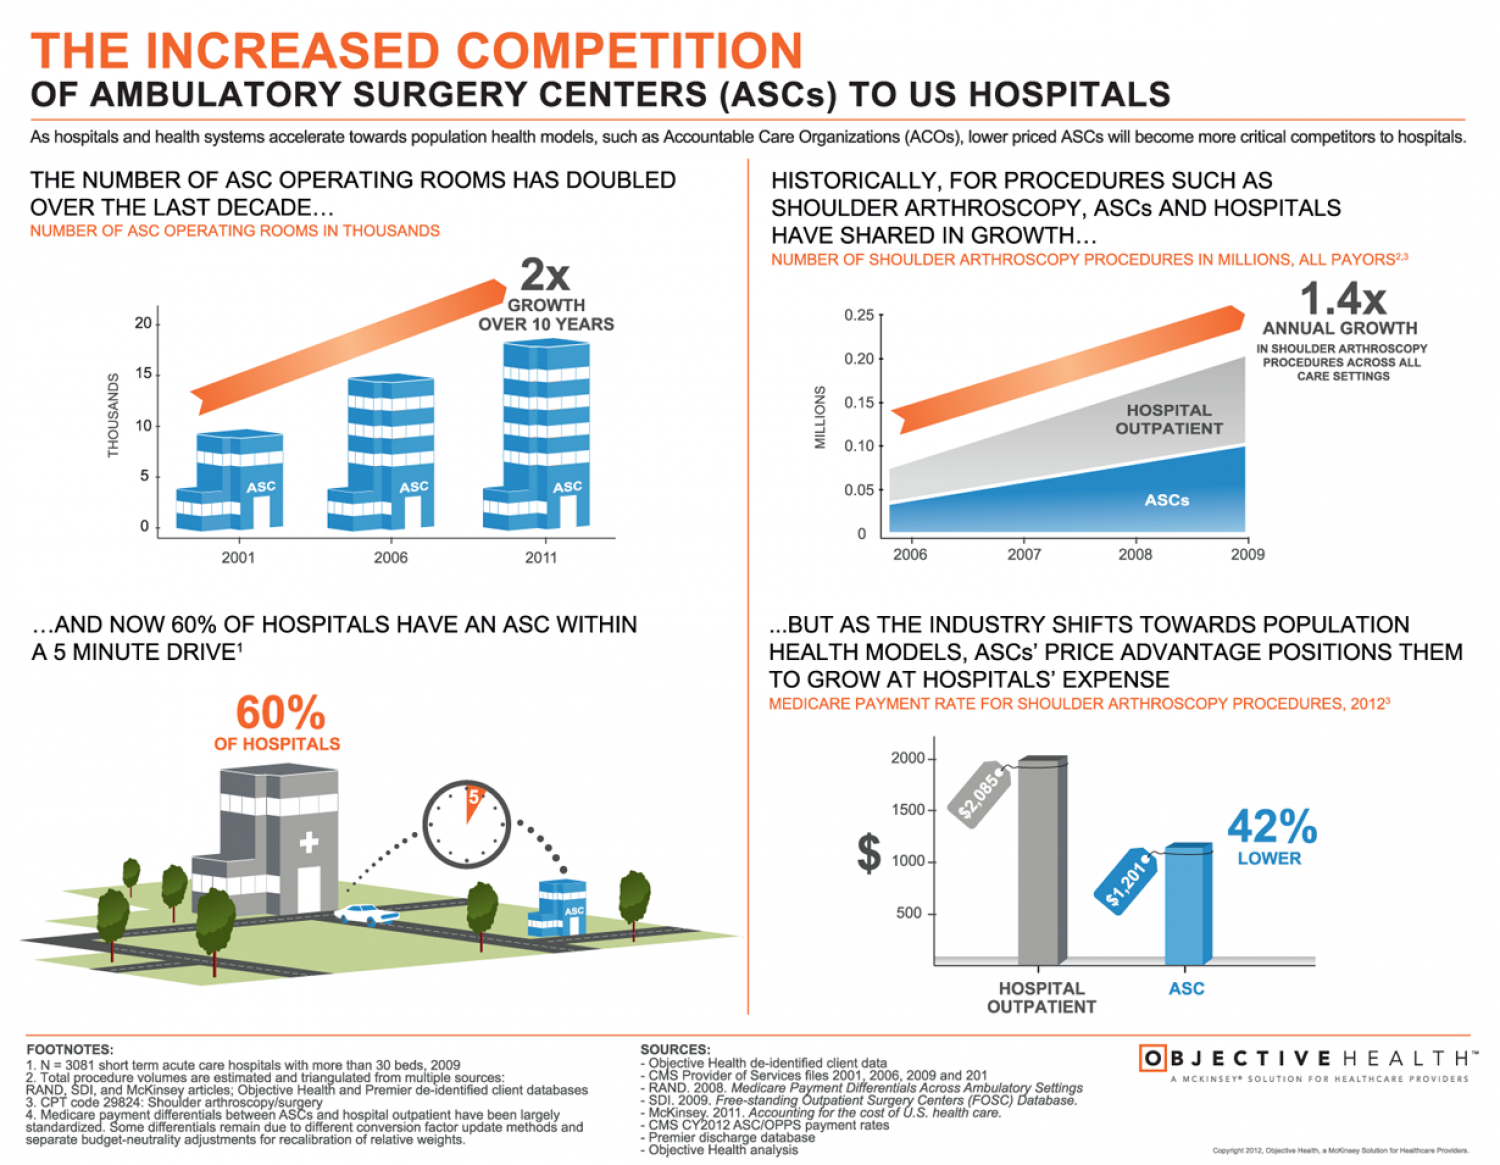 Ambulatory Surgery Centers (ASCs) Pose Competitive Threat to Hospitals Infographic